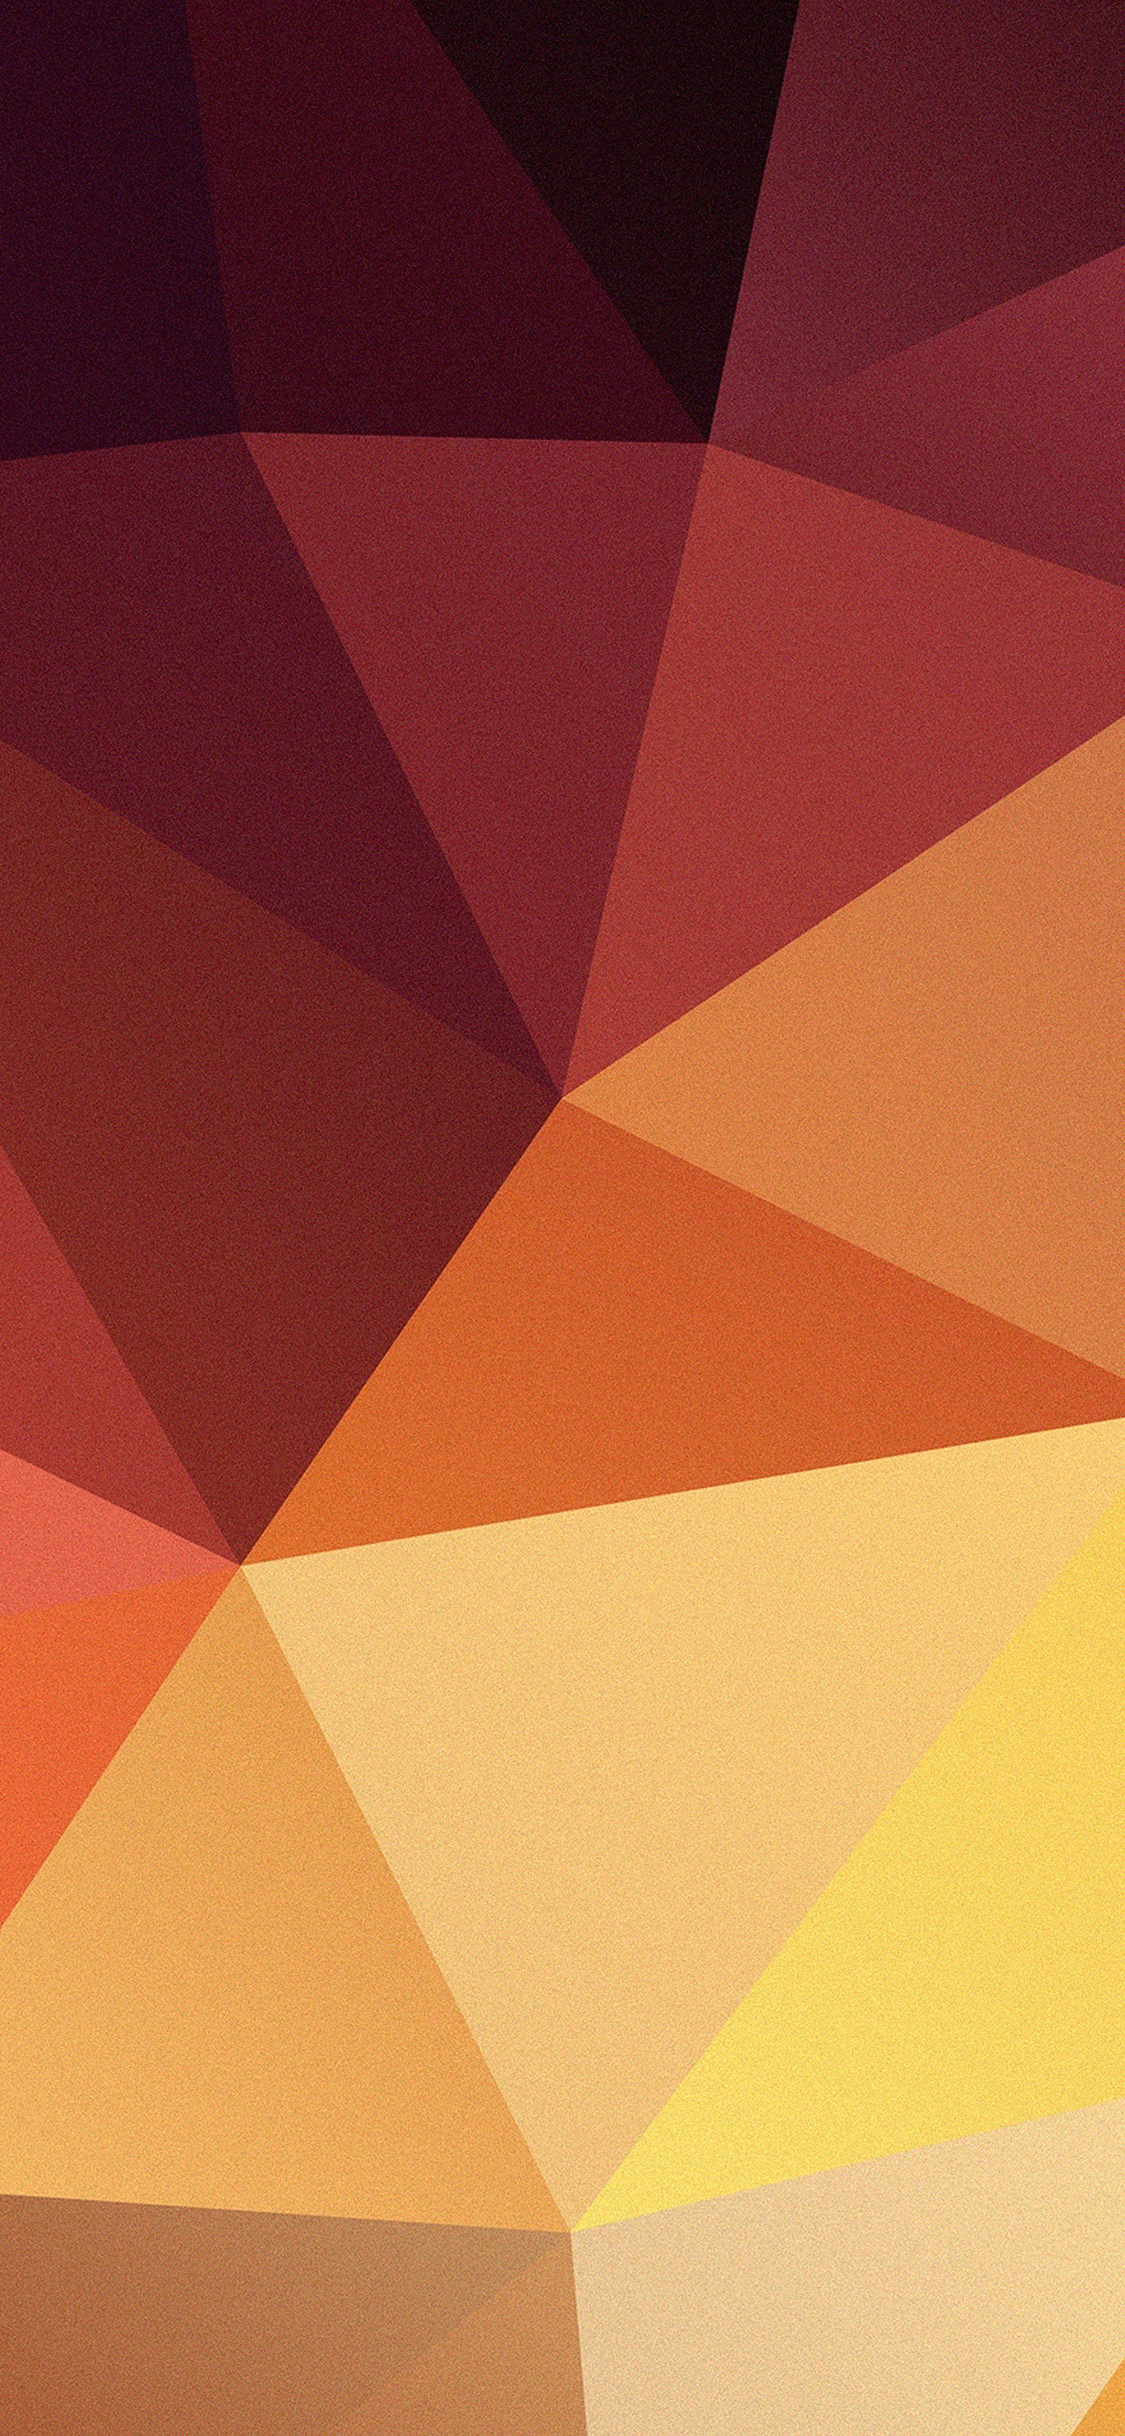 iPhoneXpapers.com-Apple-iPhone-wallpaper-vb93-wallpaper-blocks-of-triangles-pattern